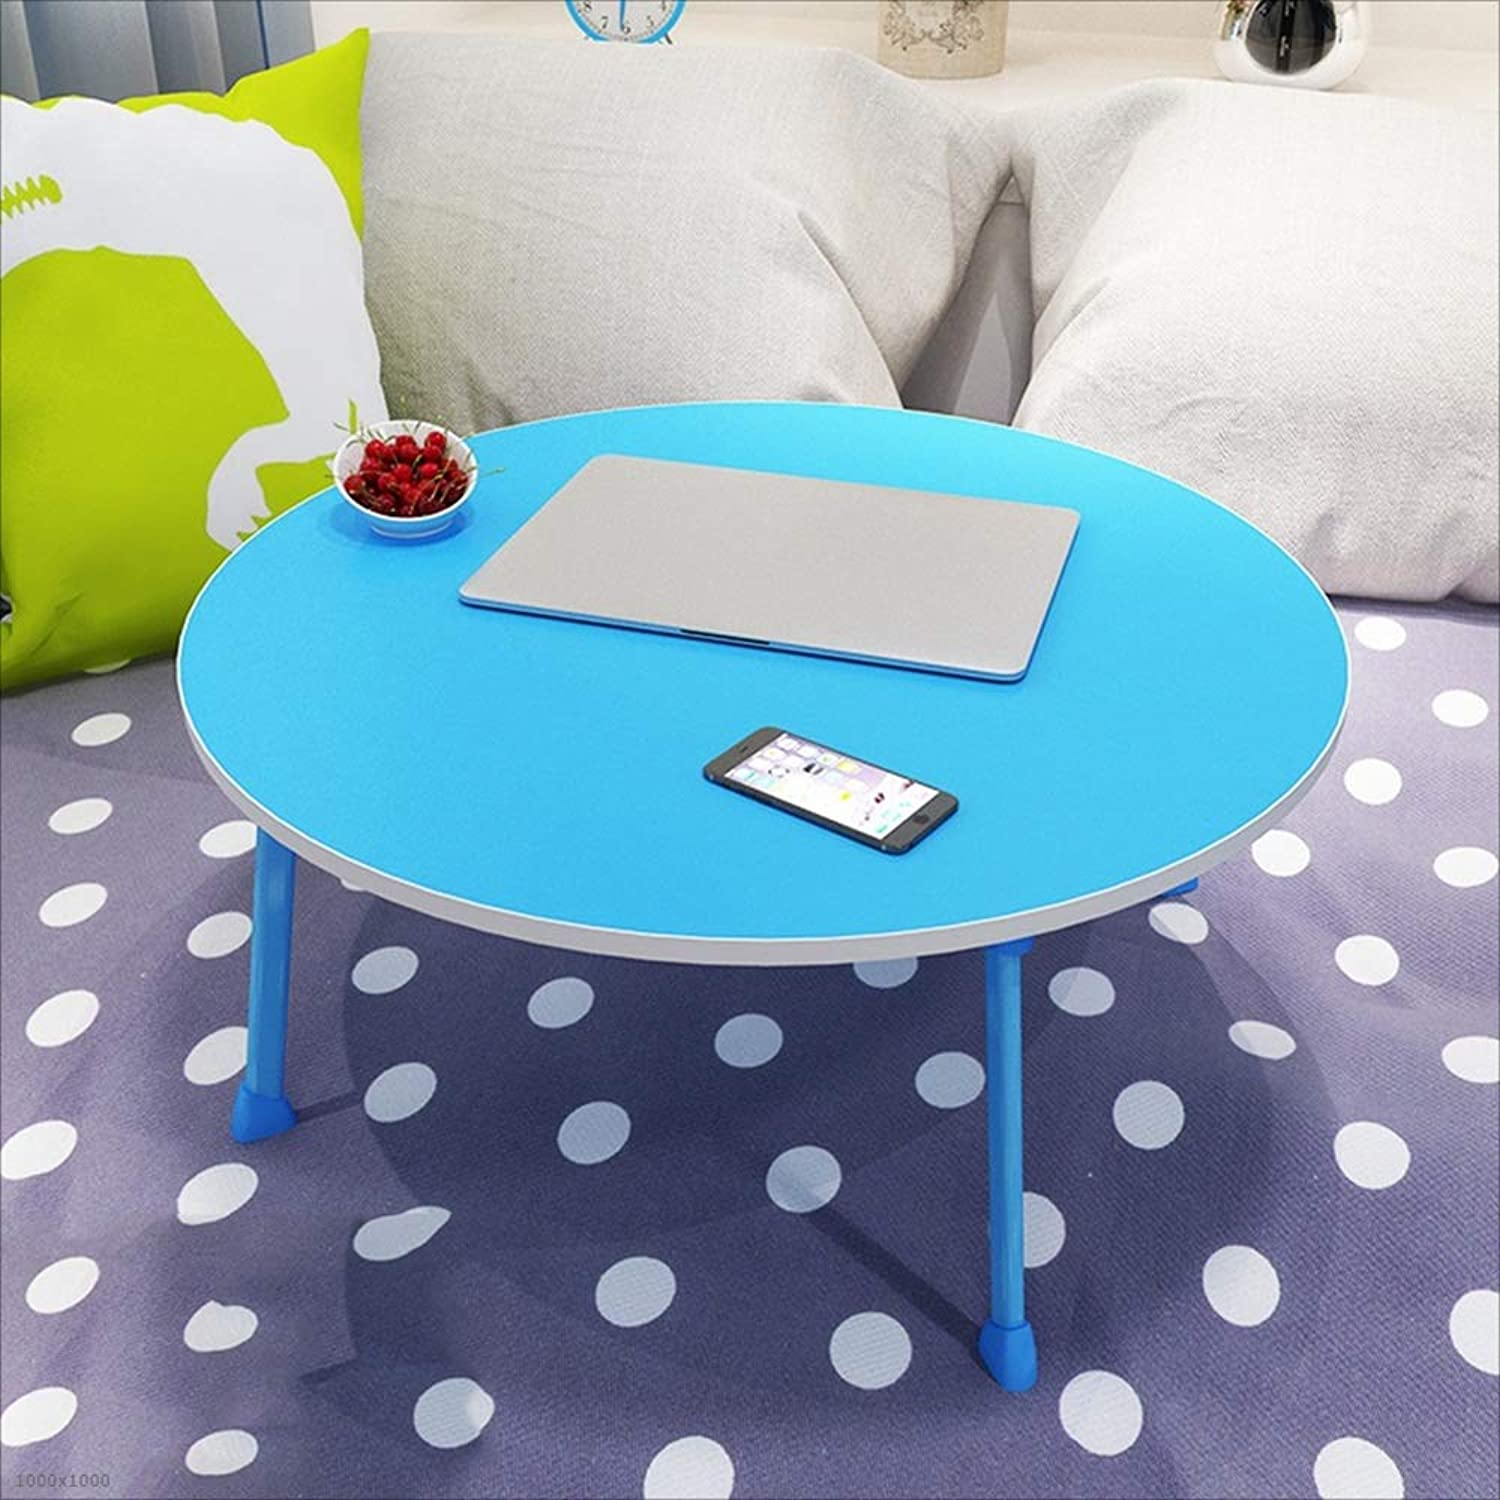 NAN Lazy Table Student's Small Table Bed Student Desk Dormitory Folding Computer Round Folding Tables